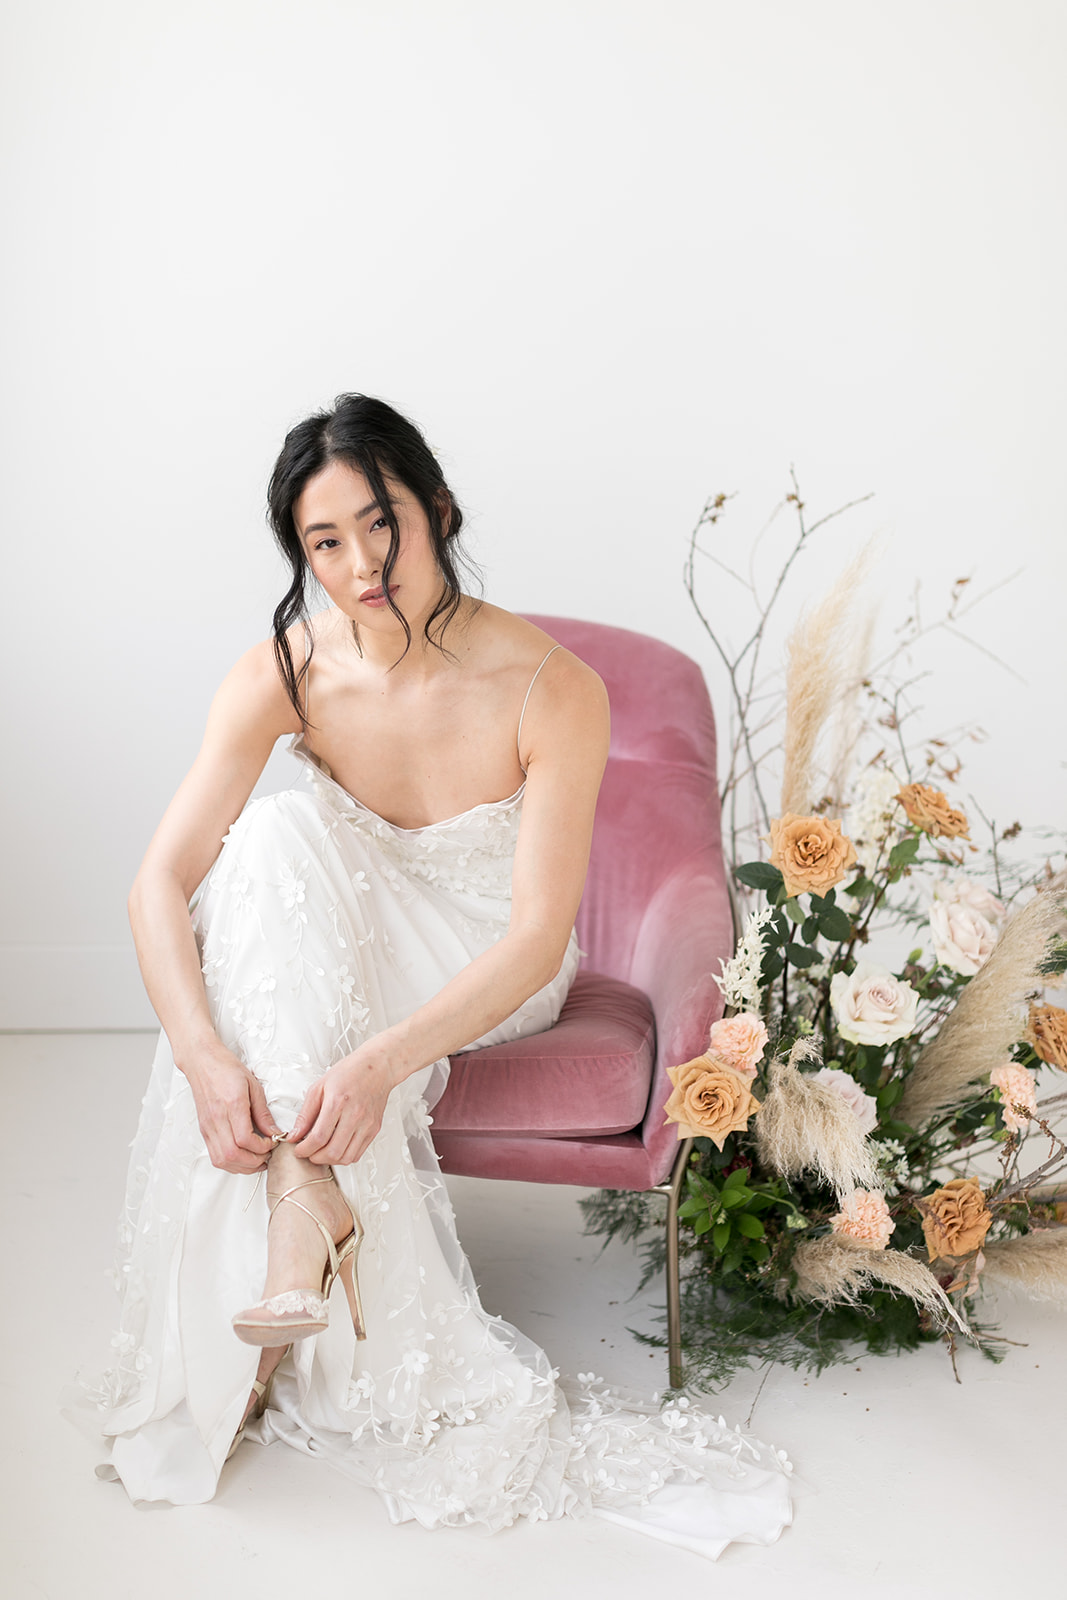 Presses Flowers Styled Shoot - Amy Caroline Photography-1_websize.jpg